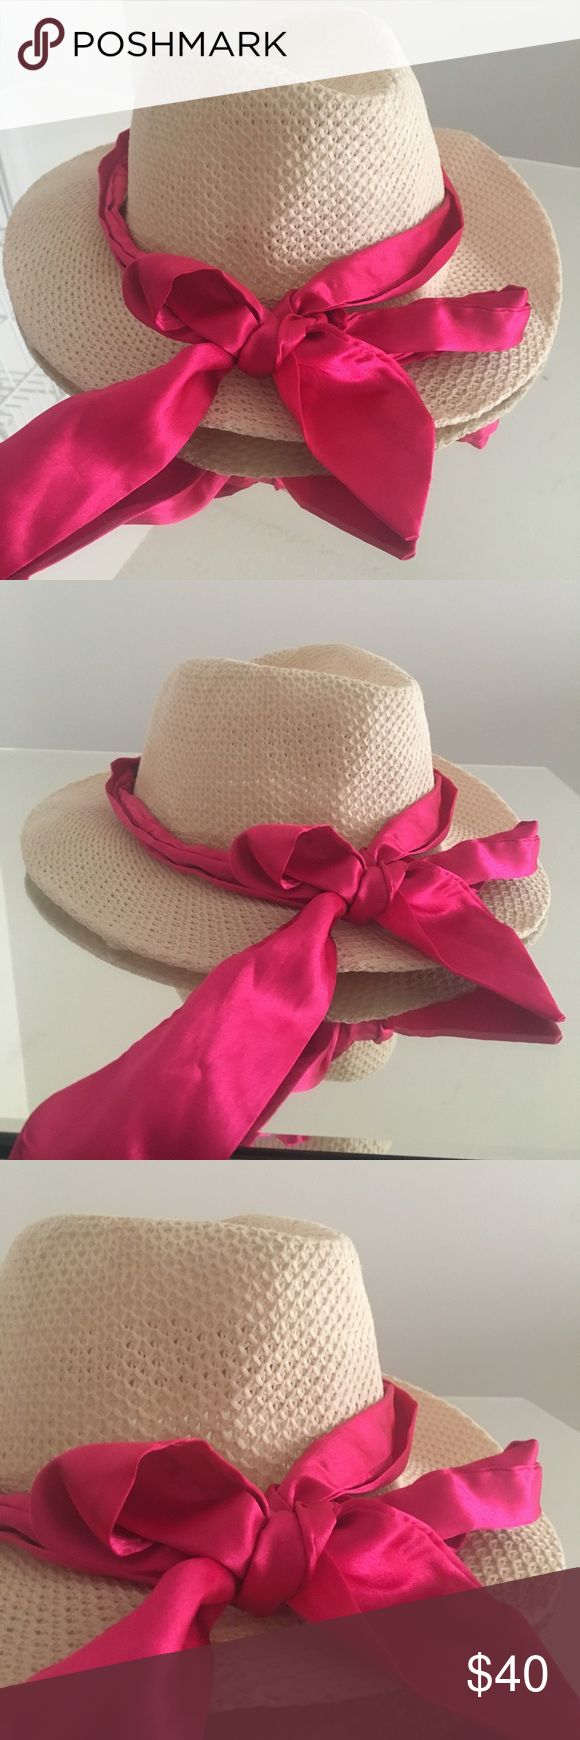 🌴🇨🇴 Cartagena Beach Fedora Hat from Colombia Perfect hat for the beach or sun to protect your hair / head. This also goes well with sunnies. Bought this in Colombia on my last day in Colombia while traveling but never wore it.  Does not come with the pink bow. I just tied that for styling purposes 💖  New - never worn! Didn't really have tags. Accessories Hats